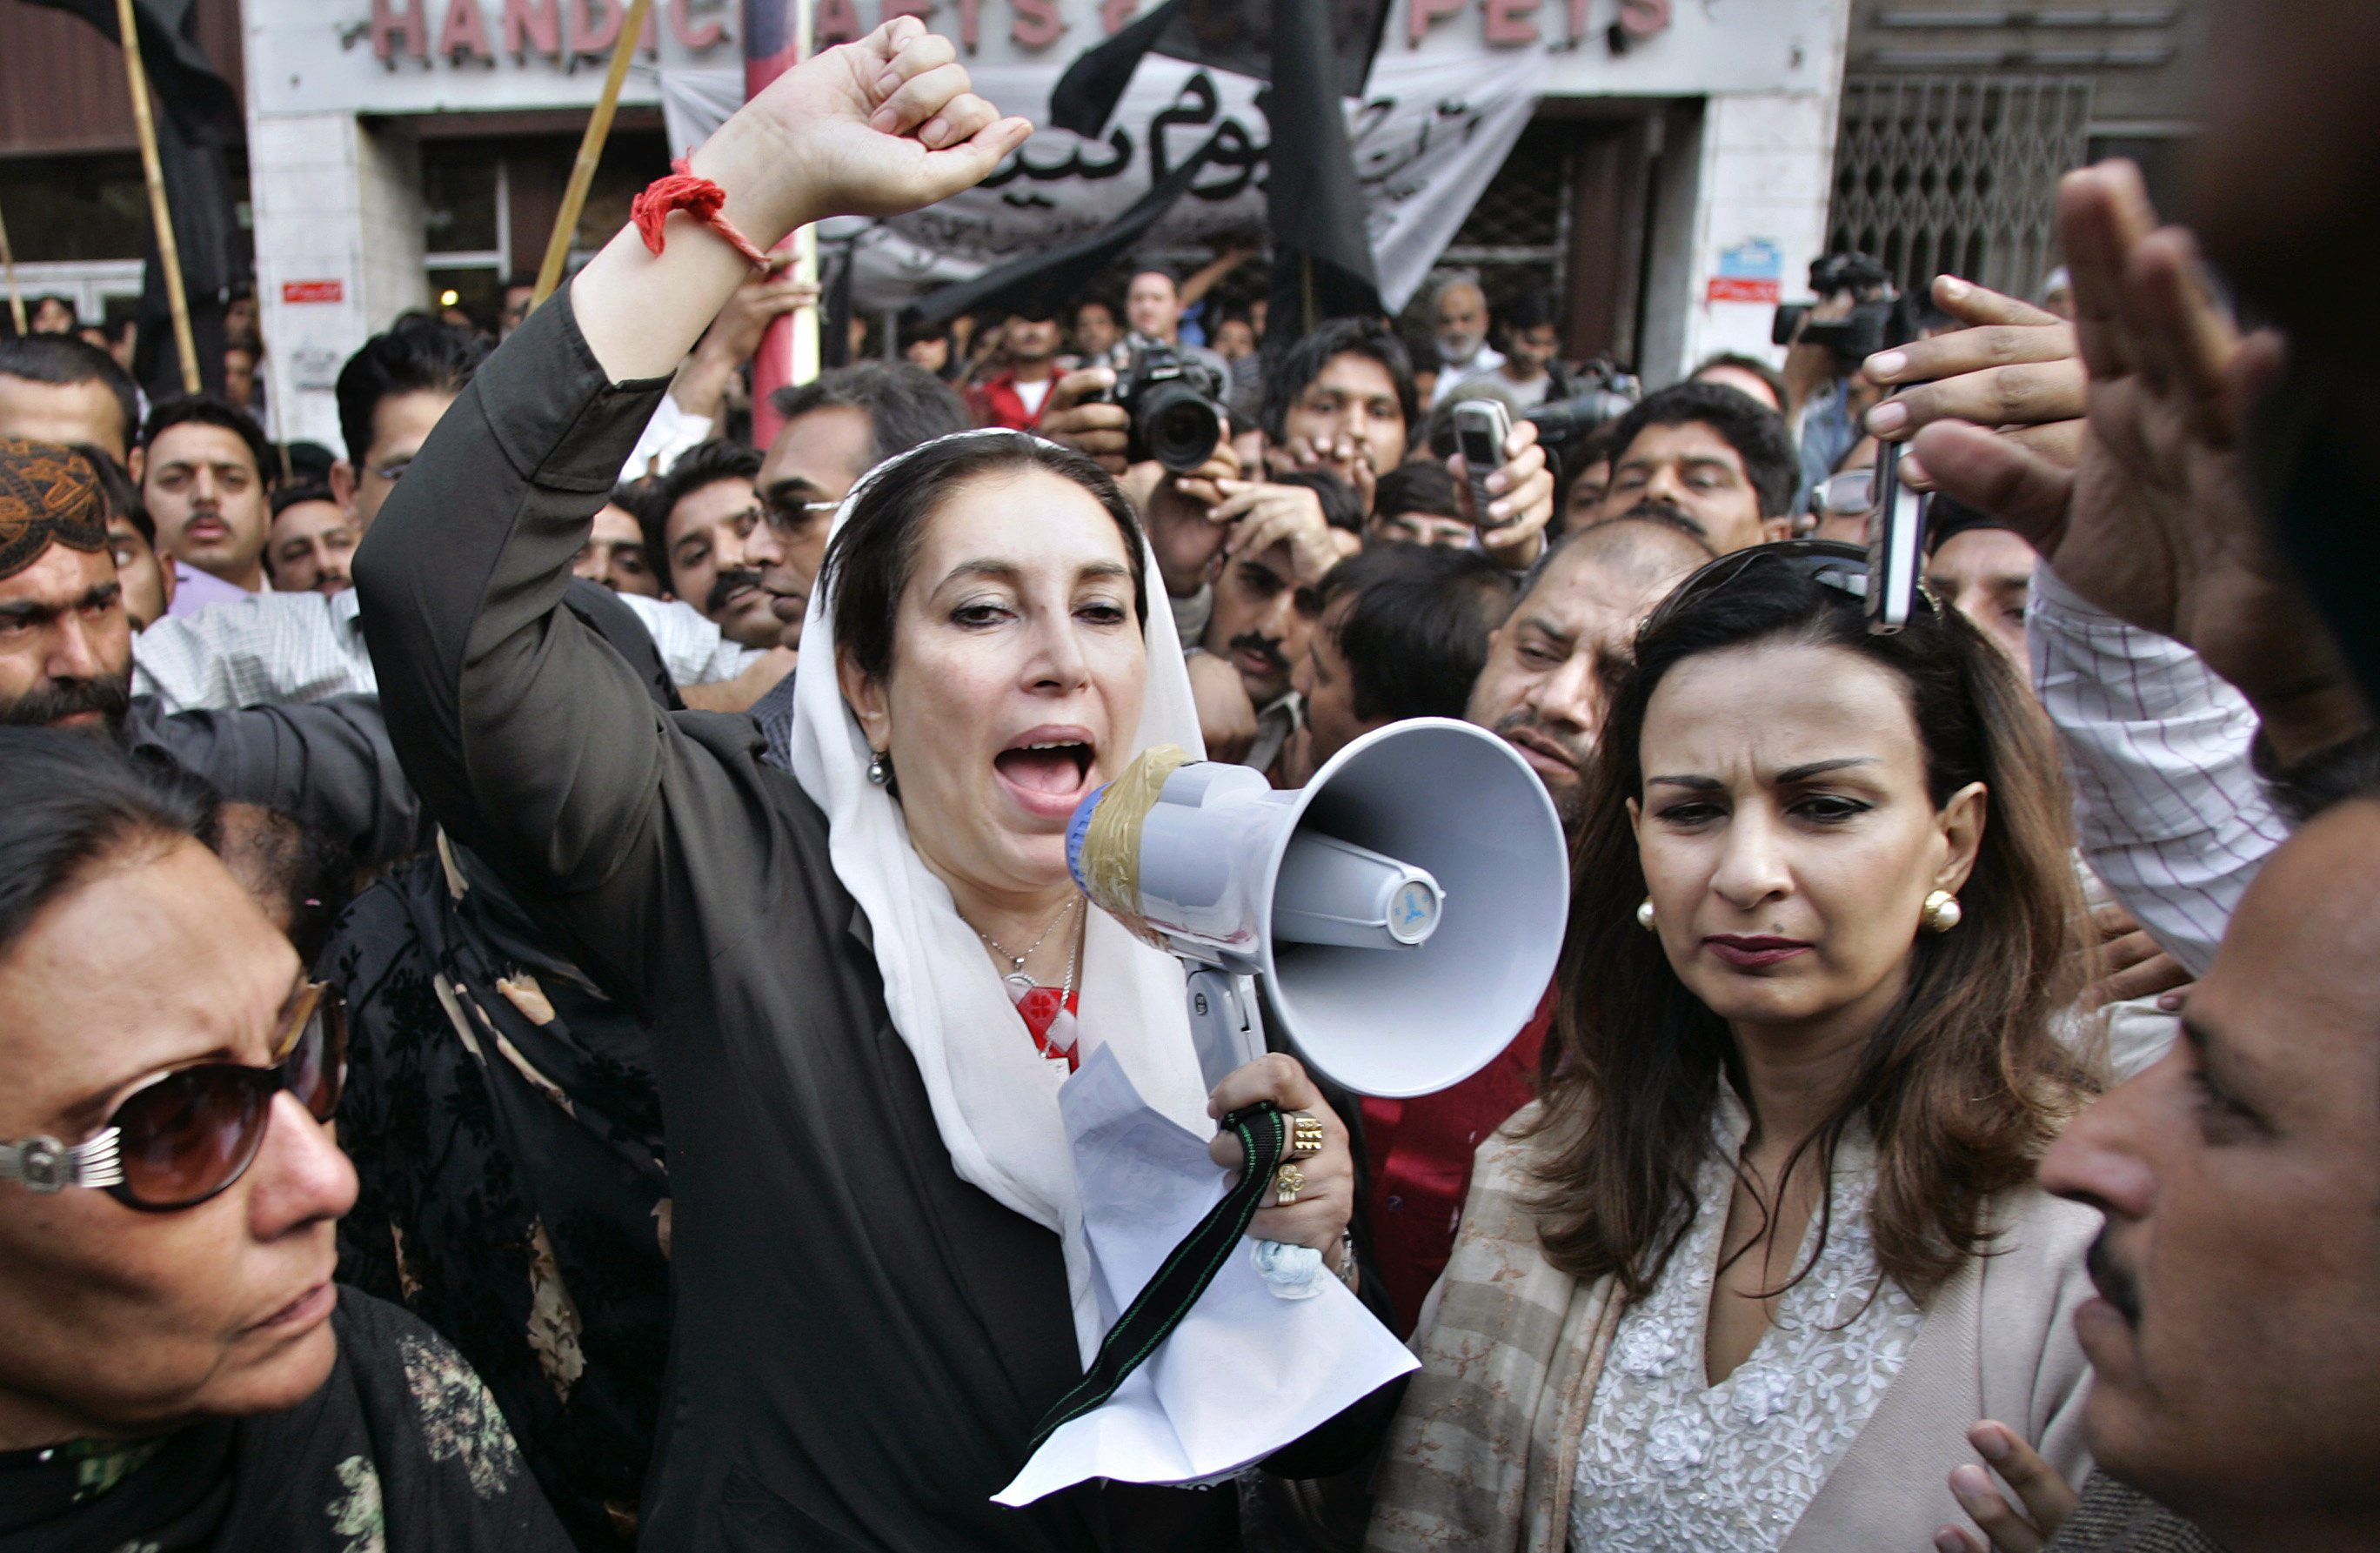 Pakistan's former Prime Minister Benazir Bhutto, center, shouts freedom freedom slogans at a protest camp arranged by journalists against the media crackdown, Saturday, Nov. 10, 2007 in Islamabad, Pakistan.